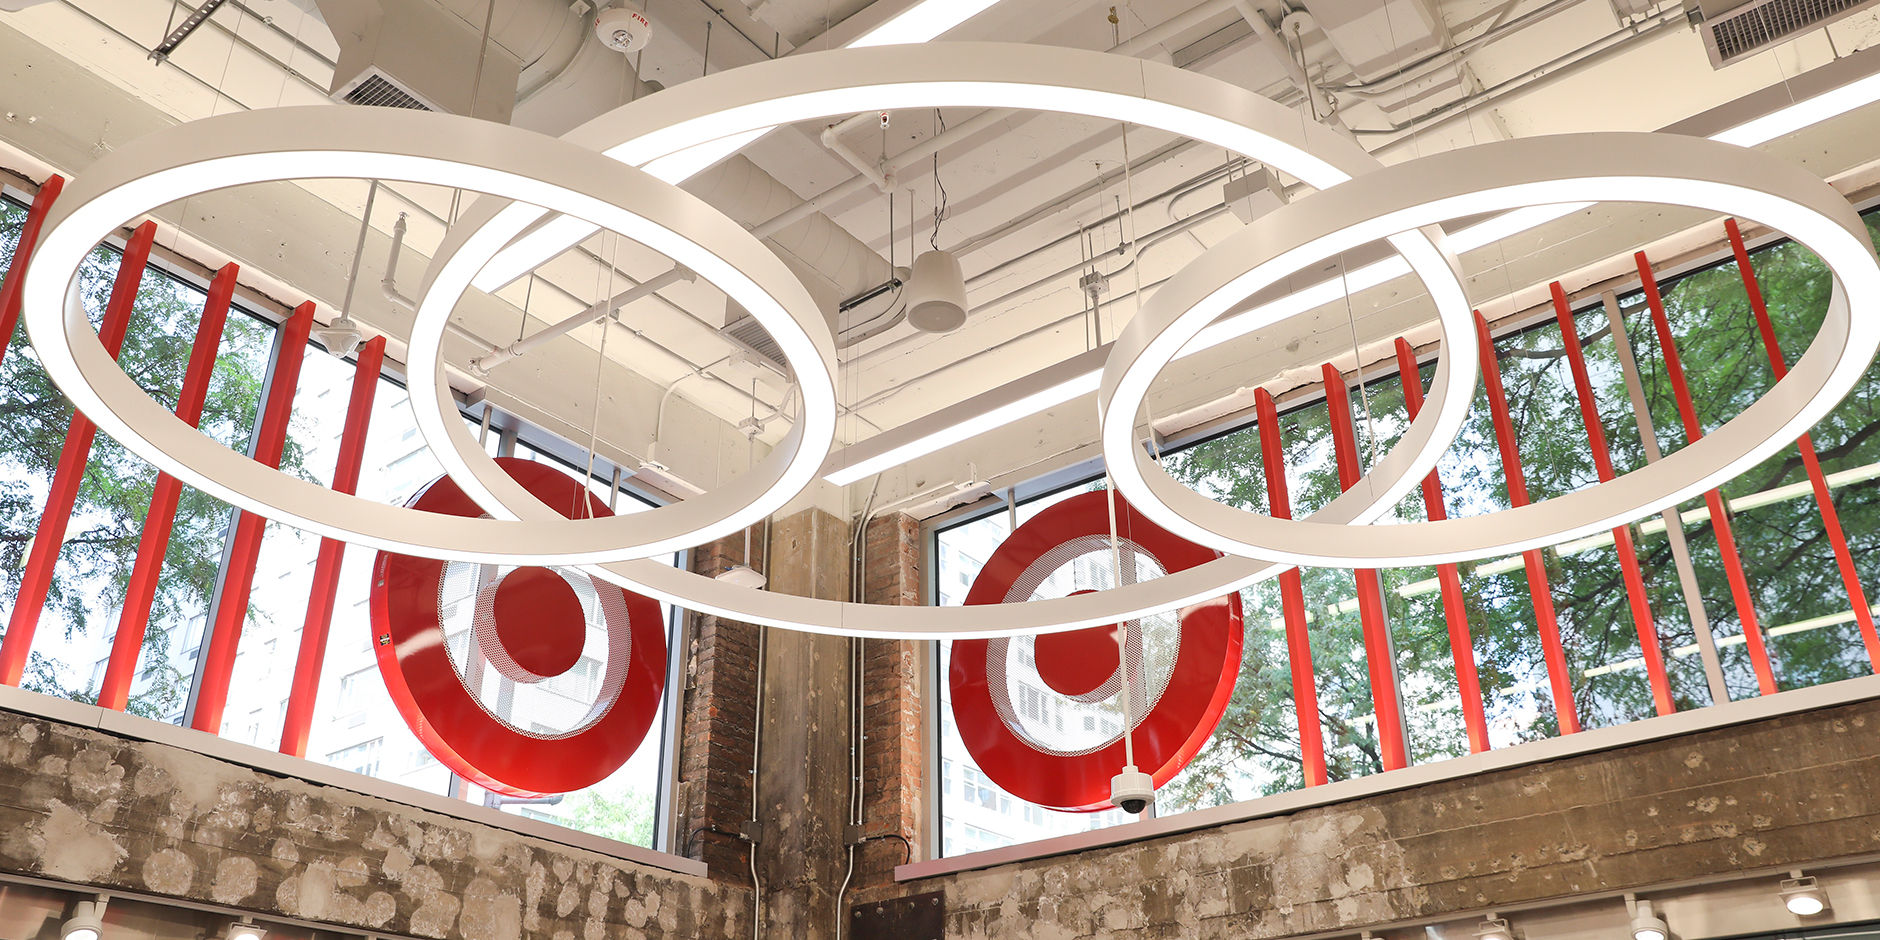 Ring lights hang in the entryway of a Target store in front of a Bullseye logo